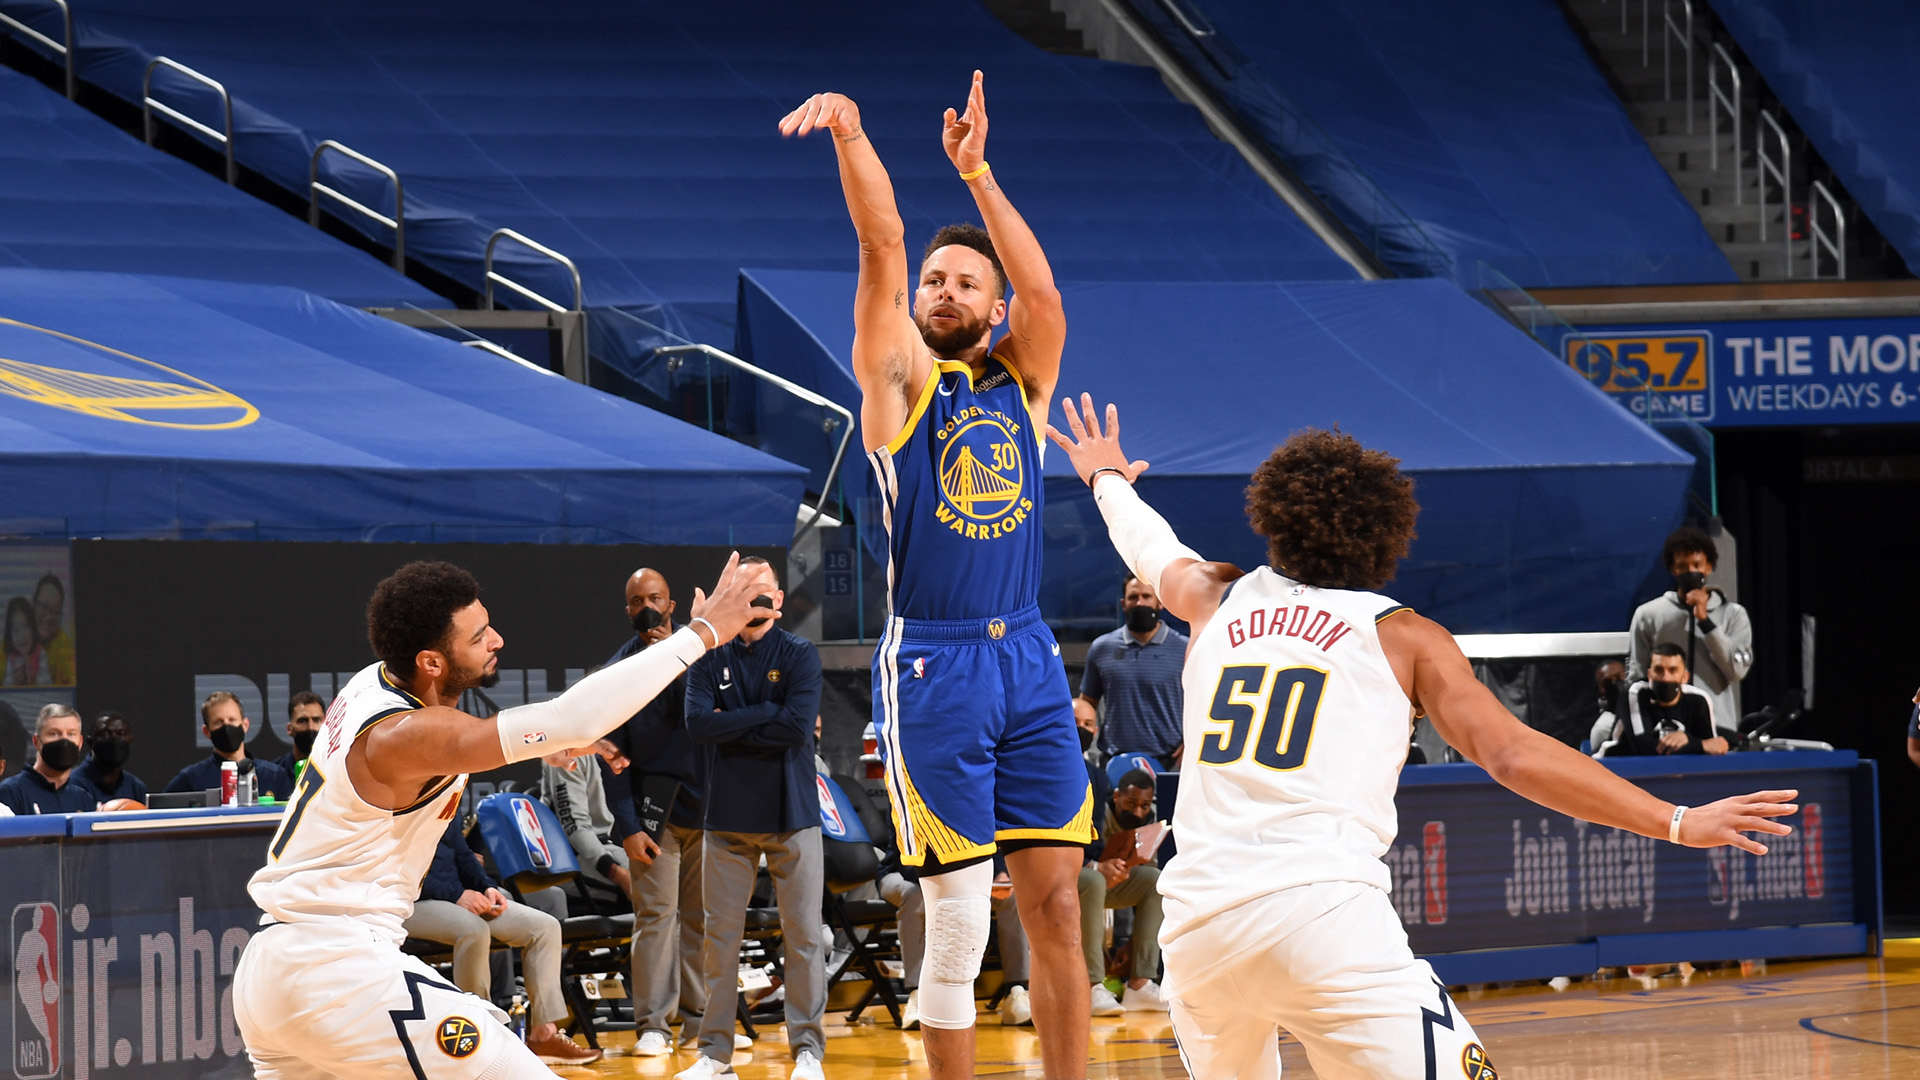 Steph Curry becomes the Warriors all-time leading scorer